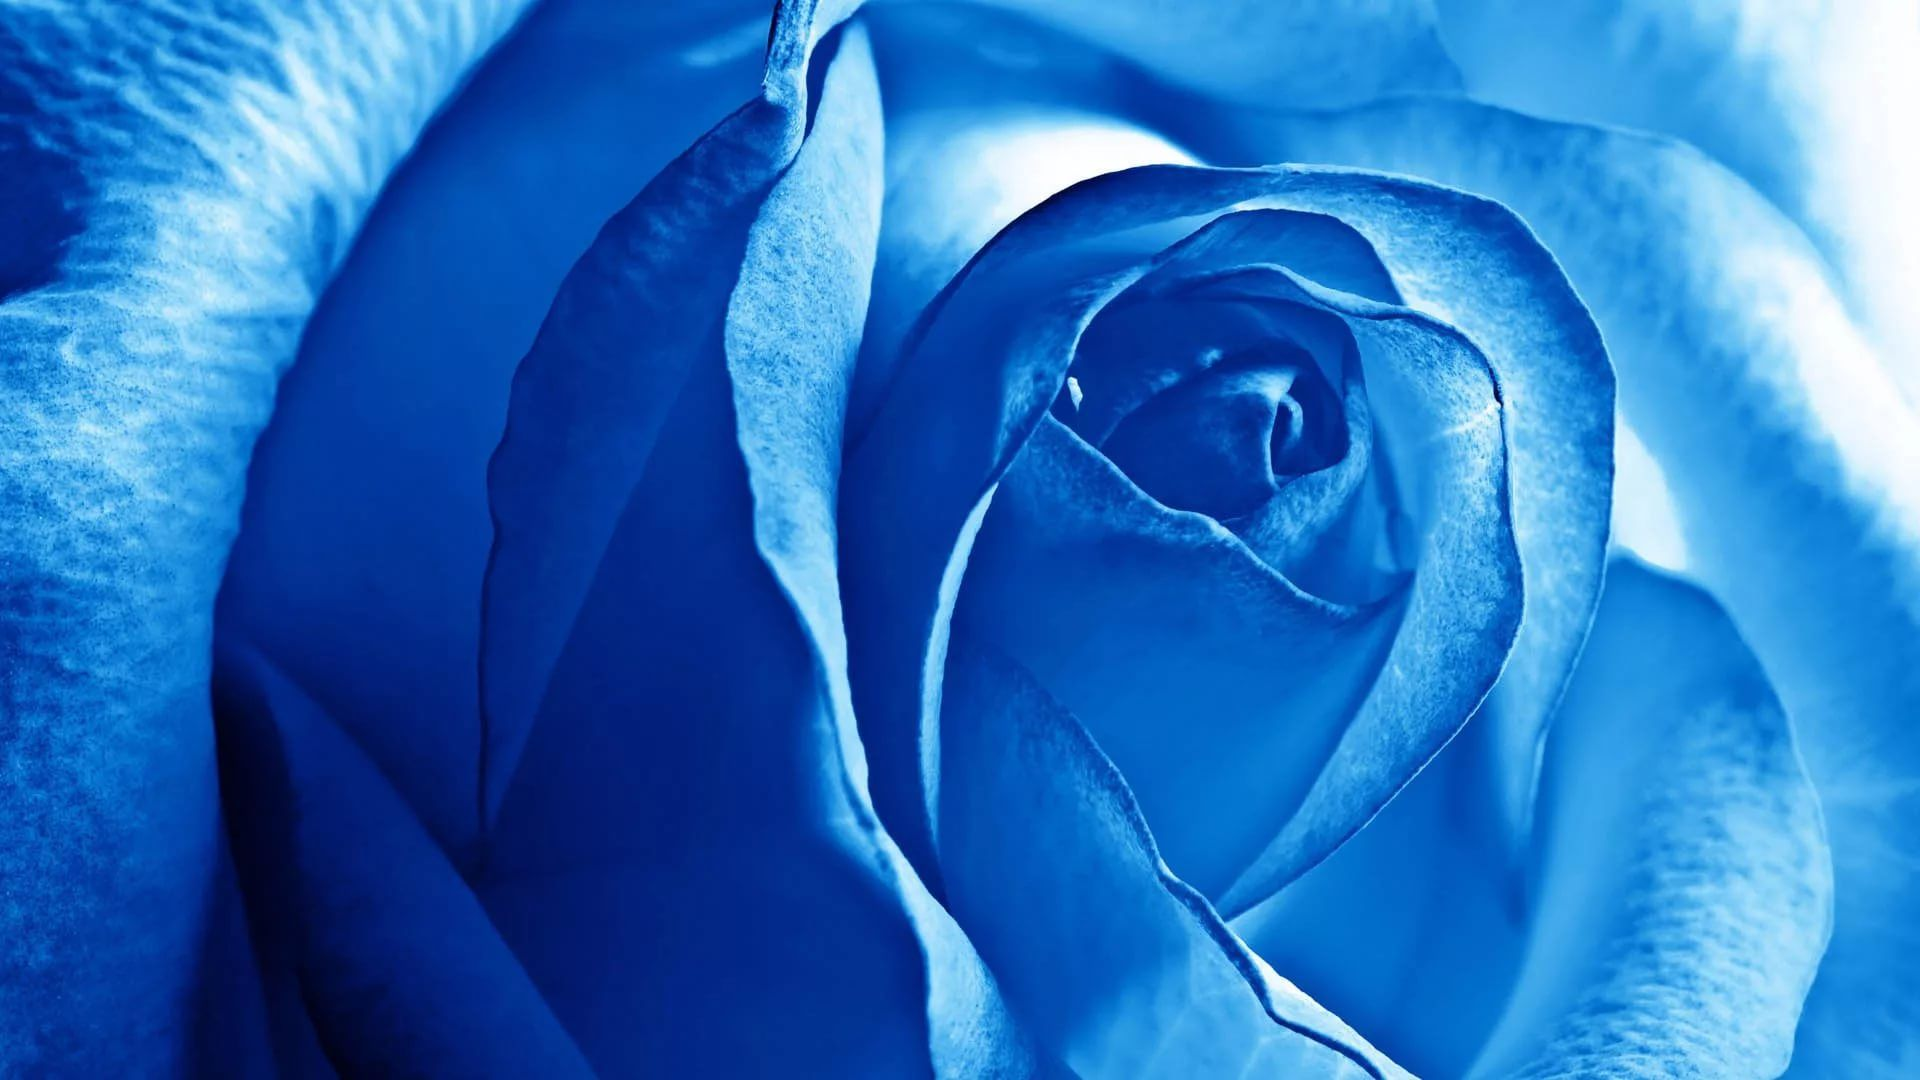 Blue Rose High Definition